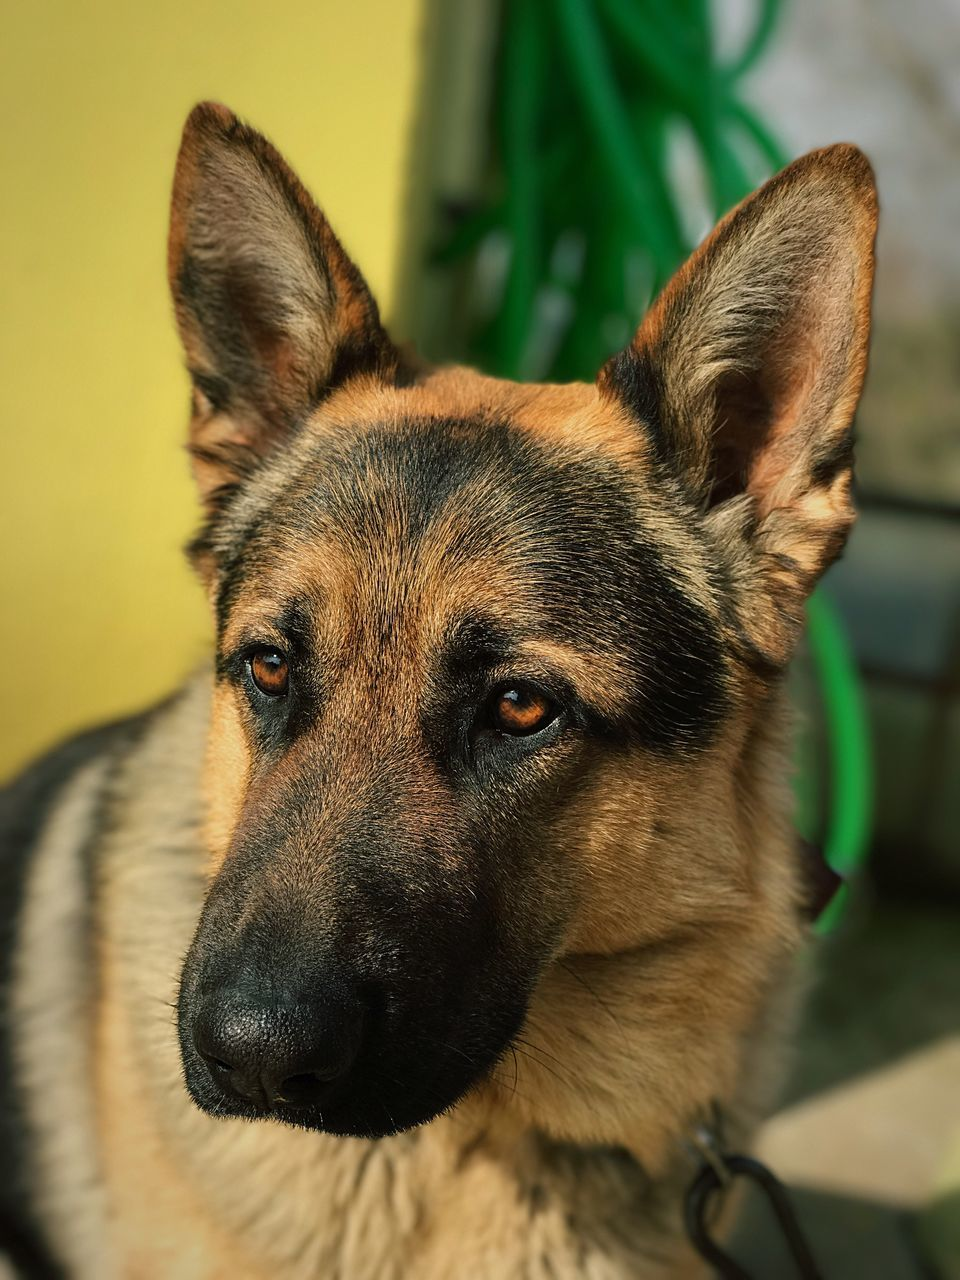 animal themes, dog, one animal, pets, mammal, domestic animals, focus on foreground, close-up, no people, portrait, looking at camera, day, indoors